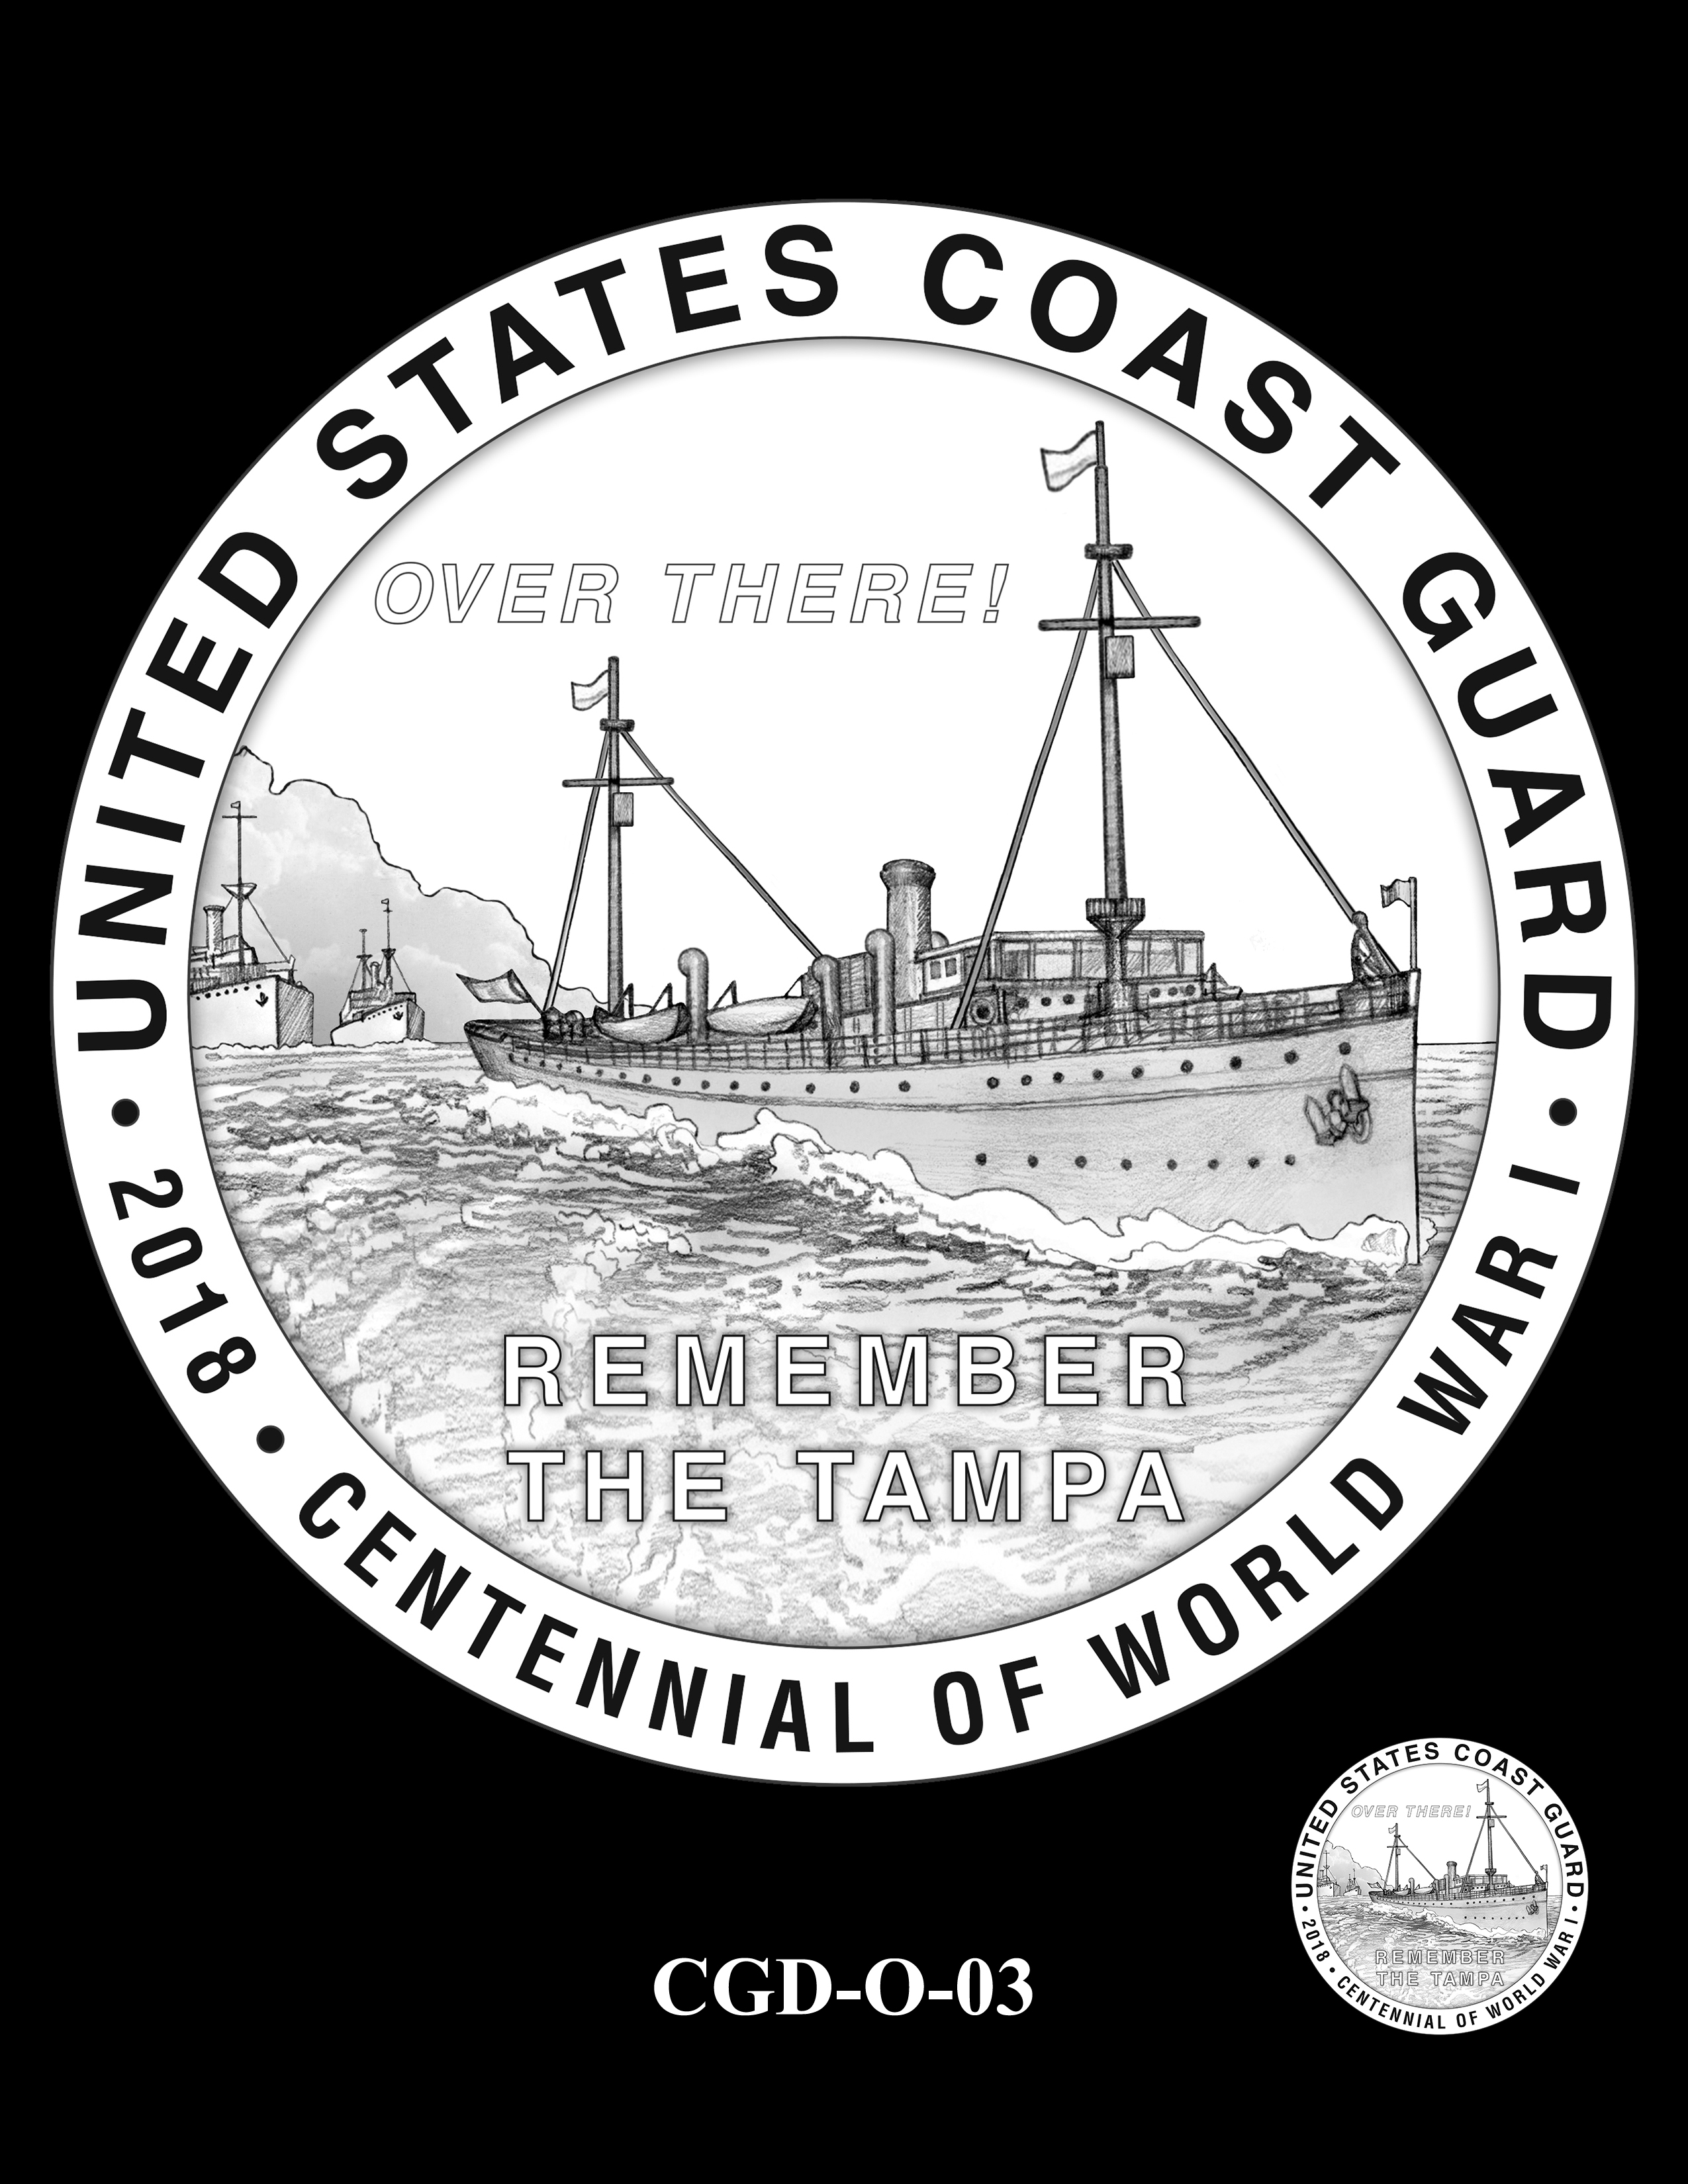 P1a-CGD-O-03 -- 2018-World War I Silver Medals - Coast Guard